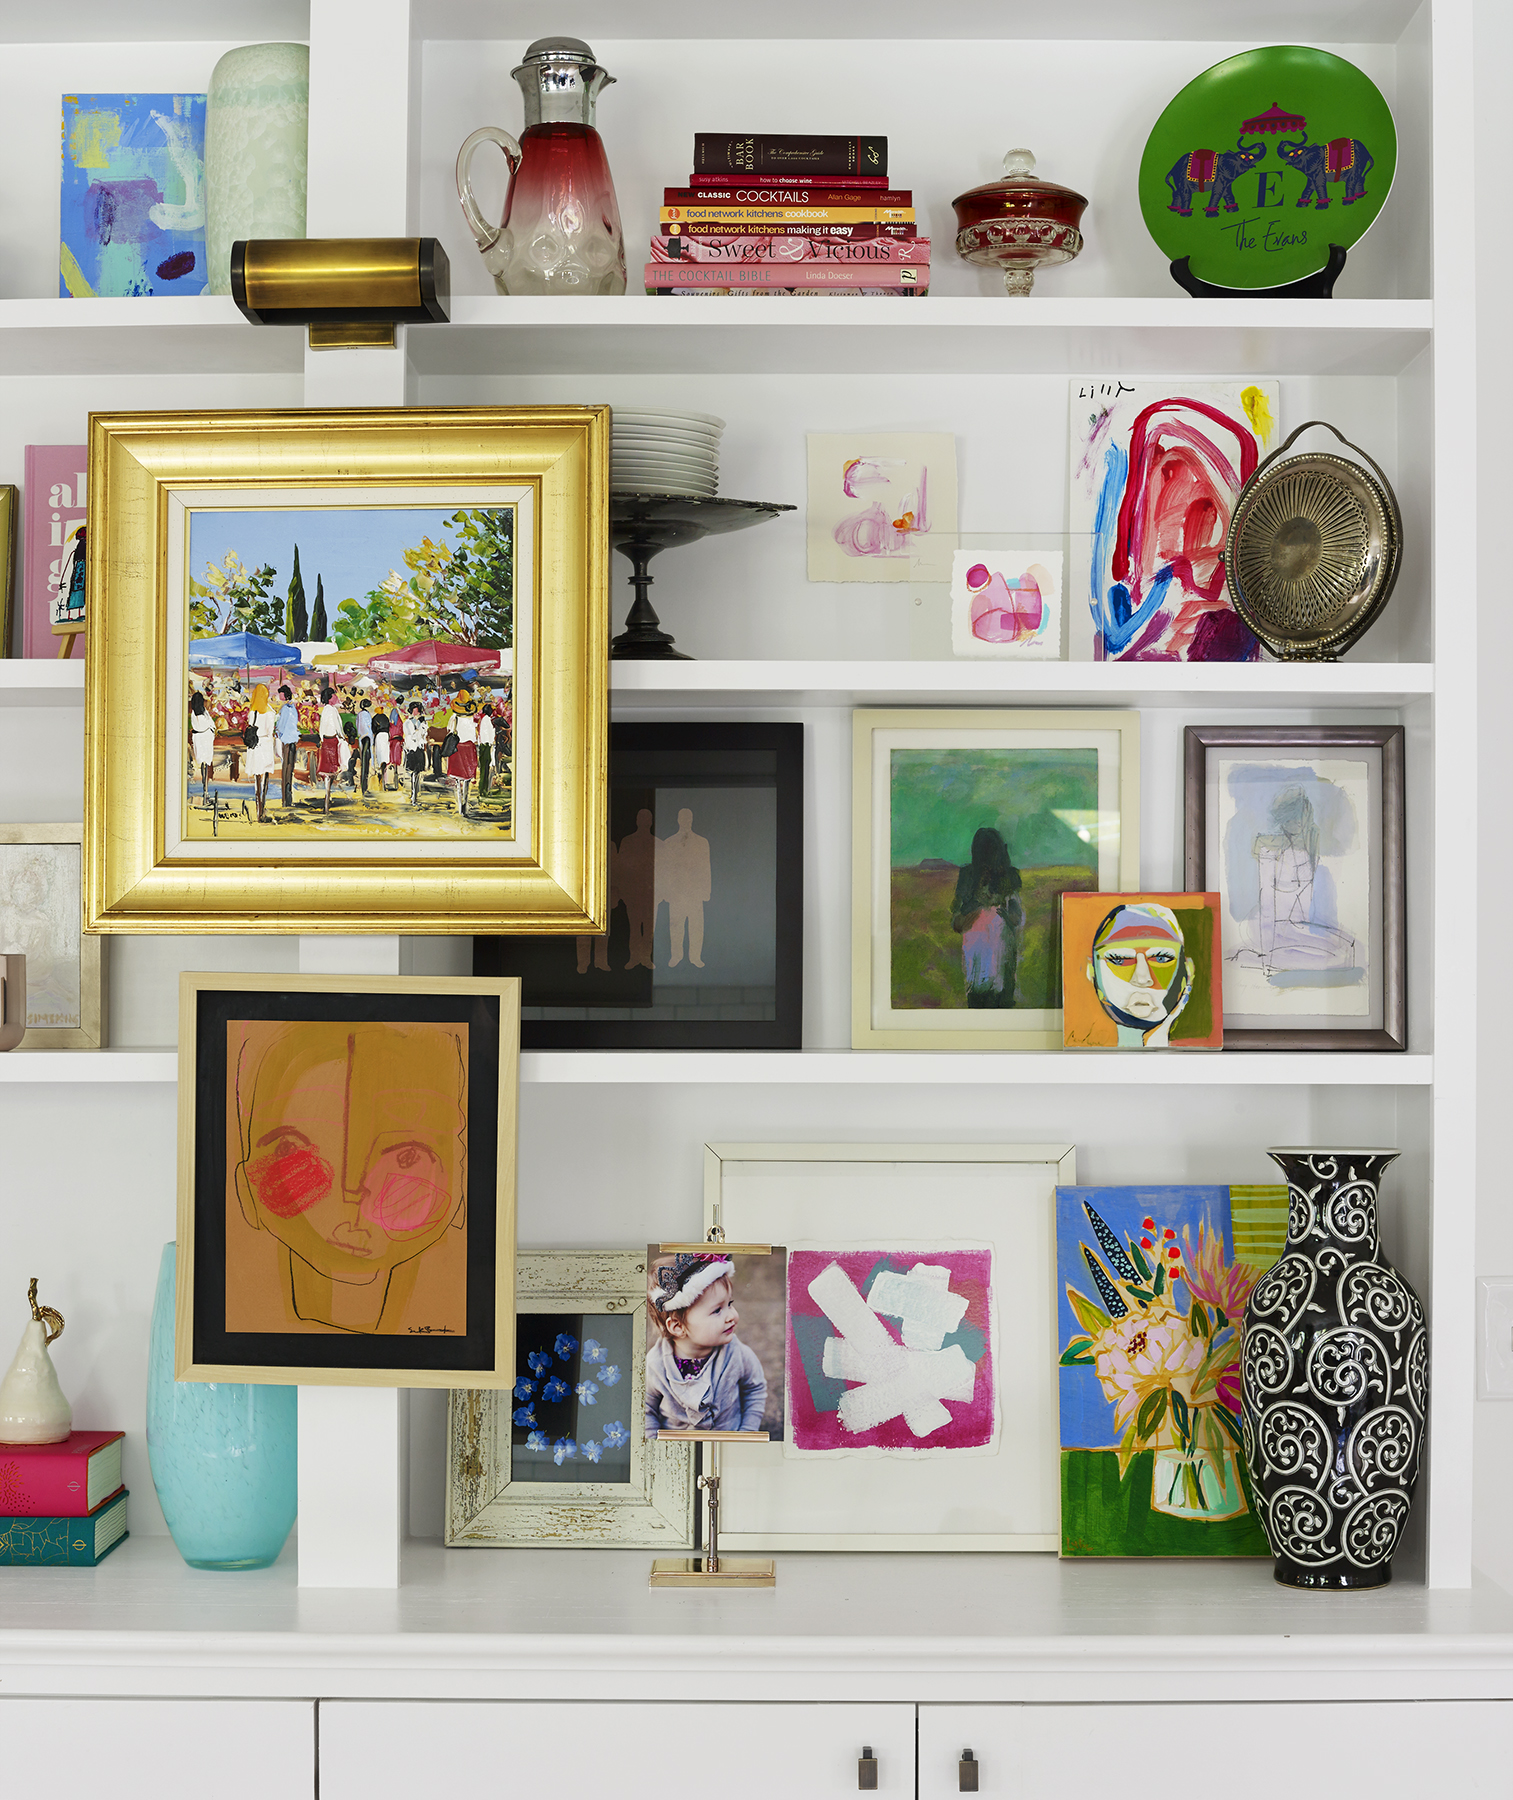 White shelves with many colored objects